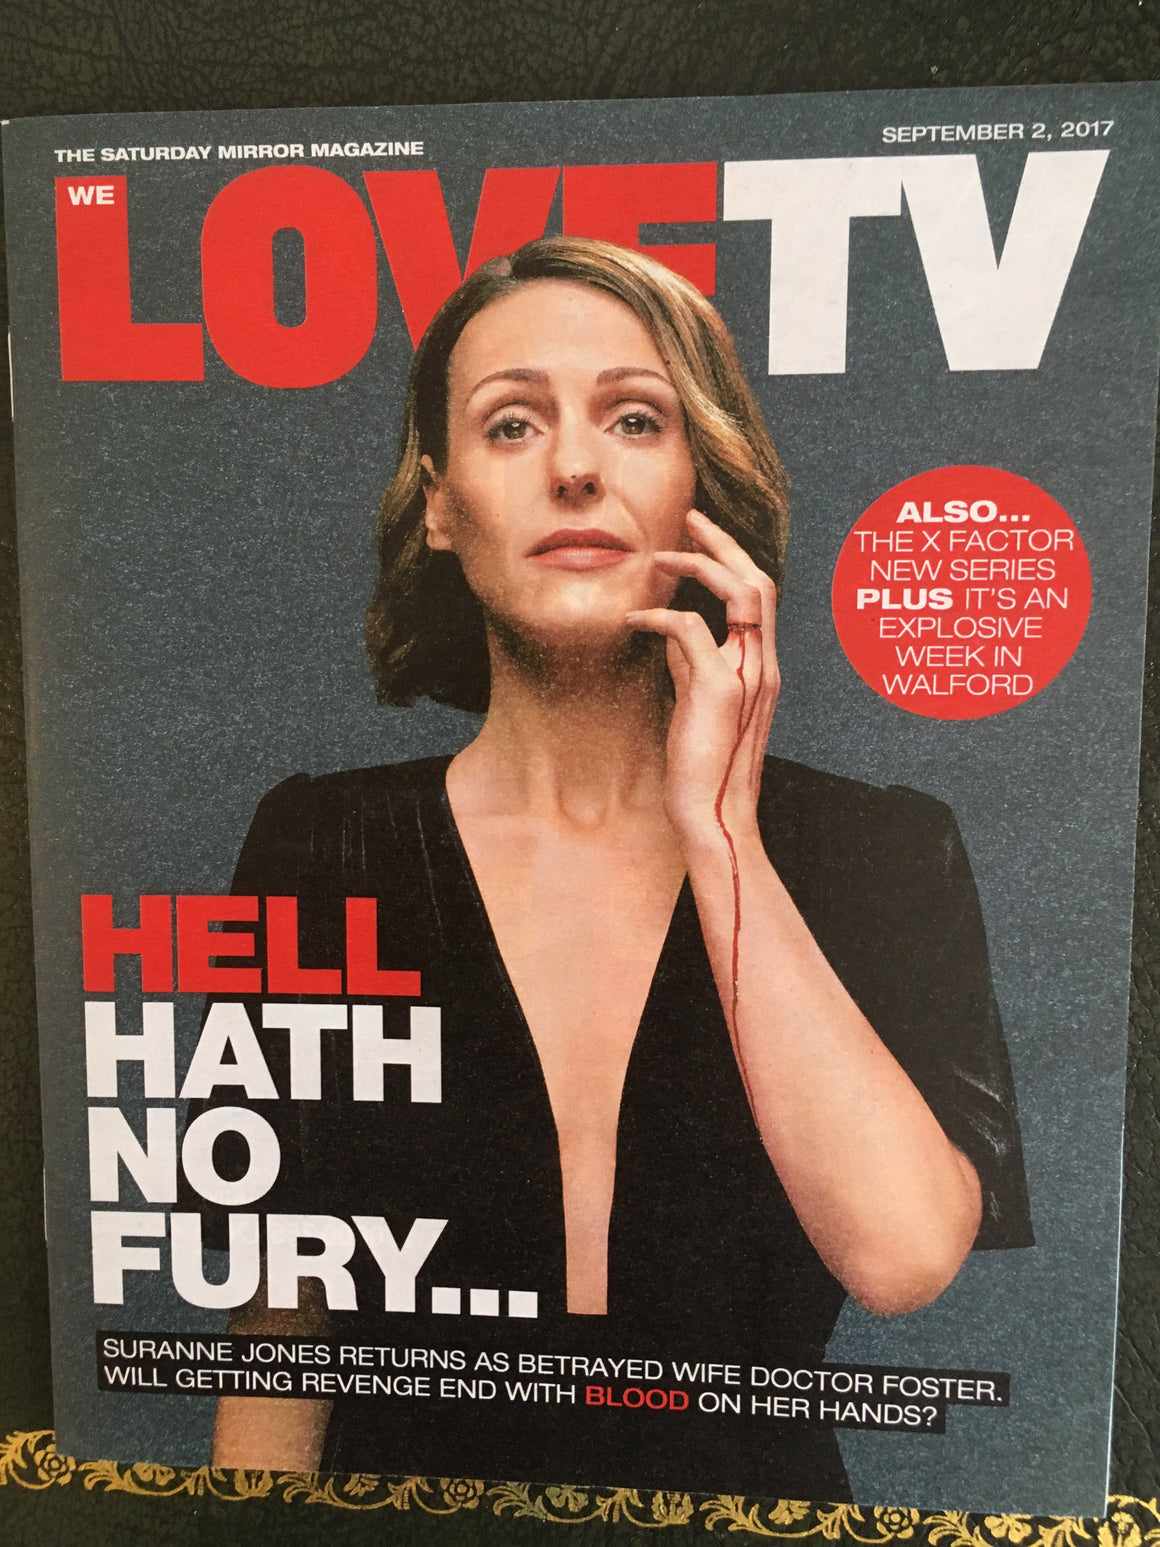 Love TV Magazine Sept 2 2017 Suranne Jones Stephen Moyer Bertie Carvel John Simm